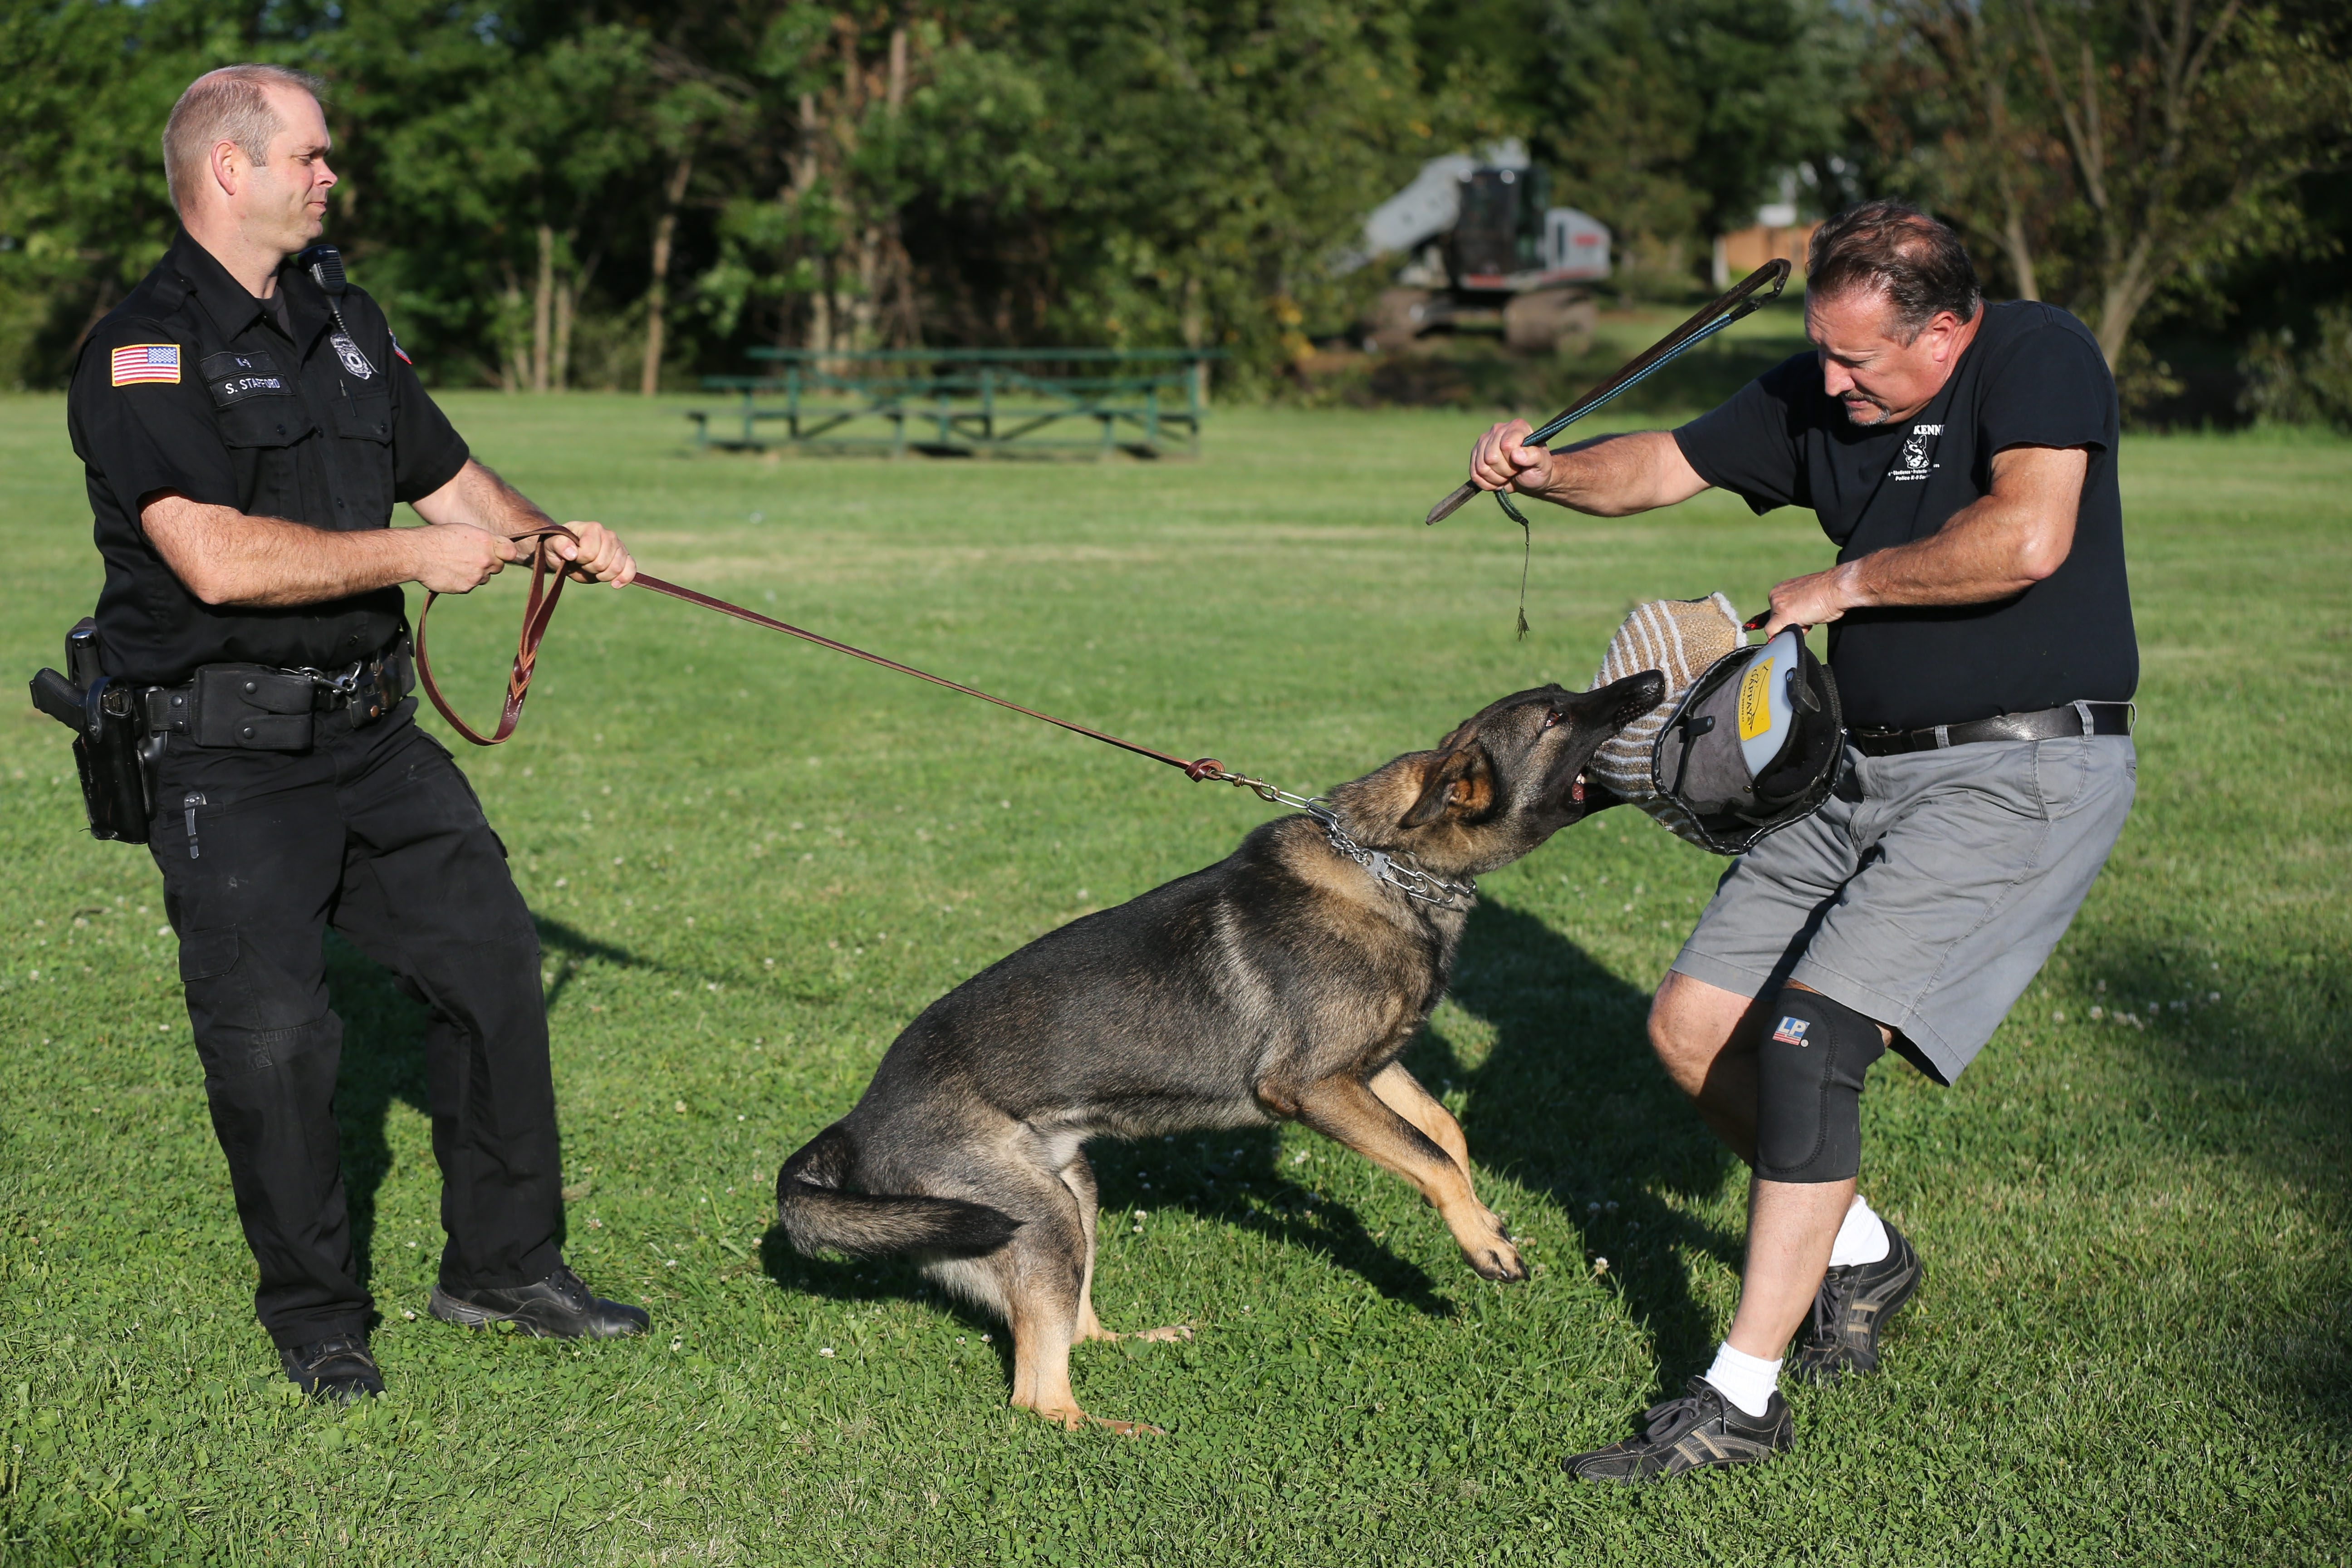 Lewiston Police Officer Scott Stafford with Gray, a newly acquired German shepherd police dog, during training at St. Leo the Great School in Amherst with Dave Lepsch, of Ceska Kennel, right.